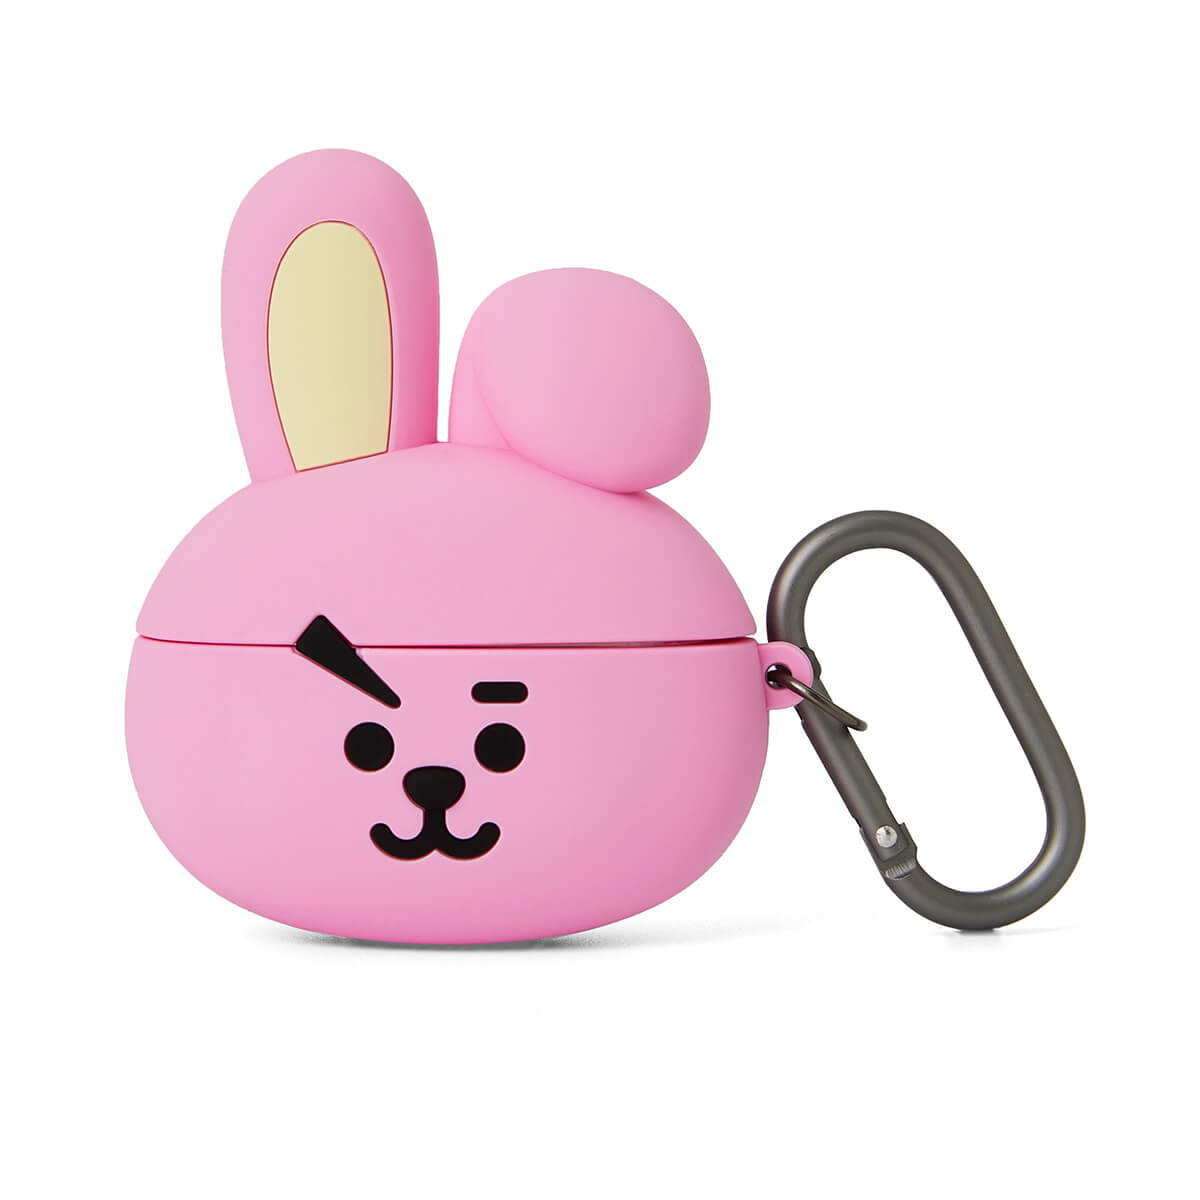 BT21 COOKY Basic AirPods Pro Case